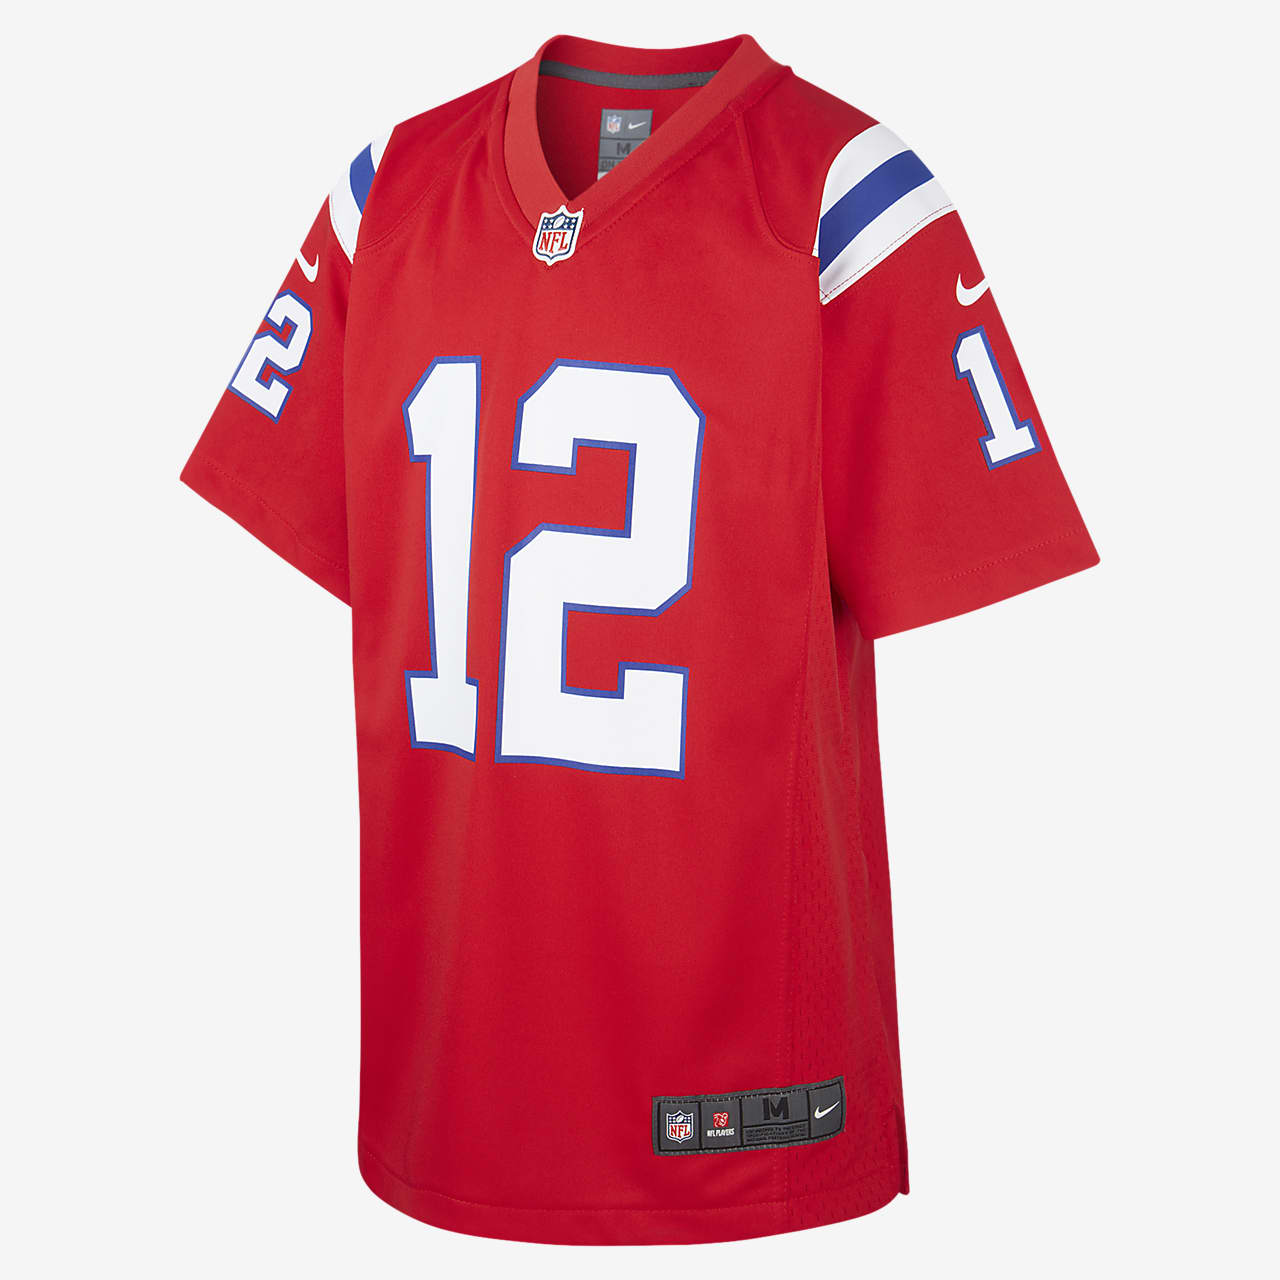 Dependencia Cambiable Hecho un desastre  NFL New England Patriots (Tom Brady) Older Kids' Game Jersey. Nike GB